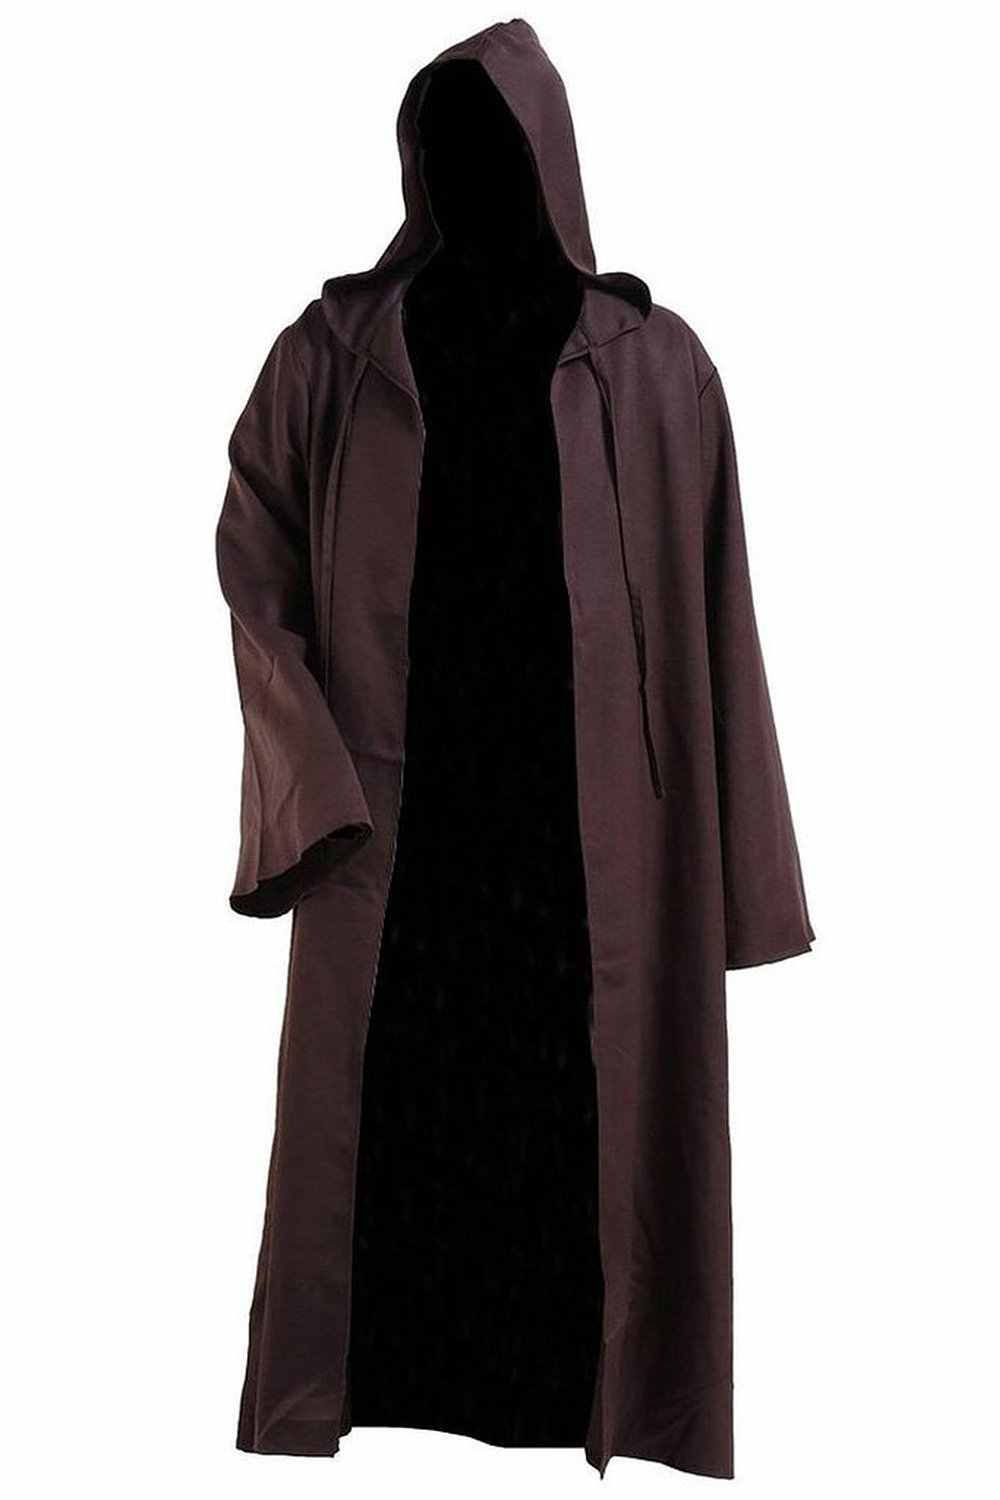 0797ac4162 New Arrival Star Wars Kenobi Jedi Tunic Men Hooded Brown Cape Robe Cosplay Costume  Cloak Outfit